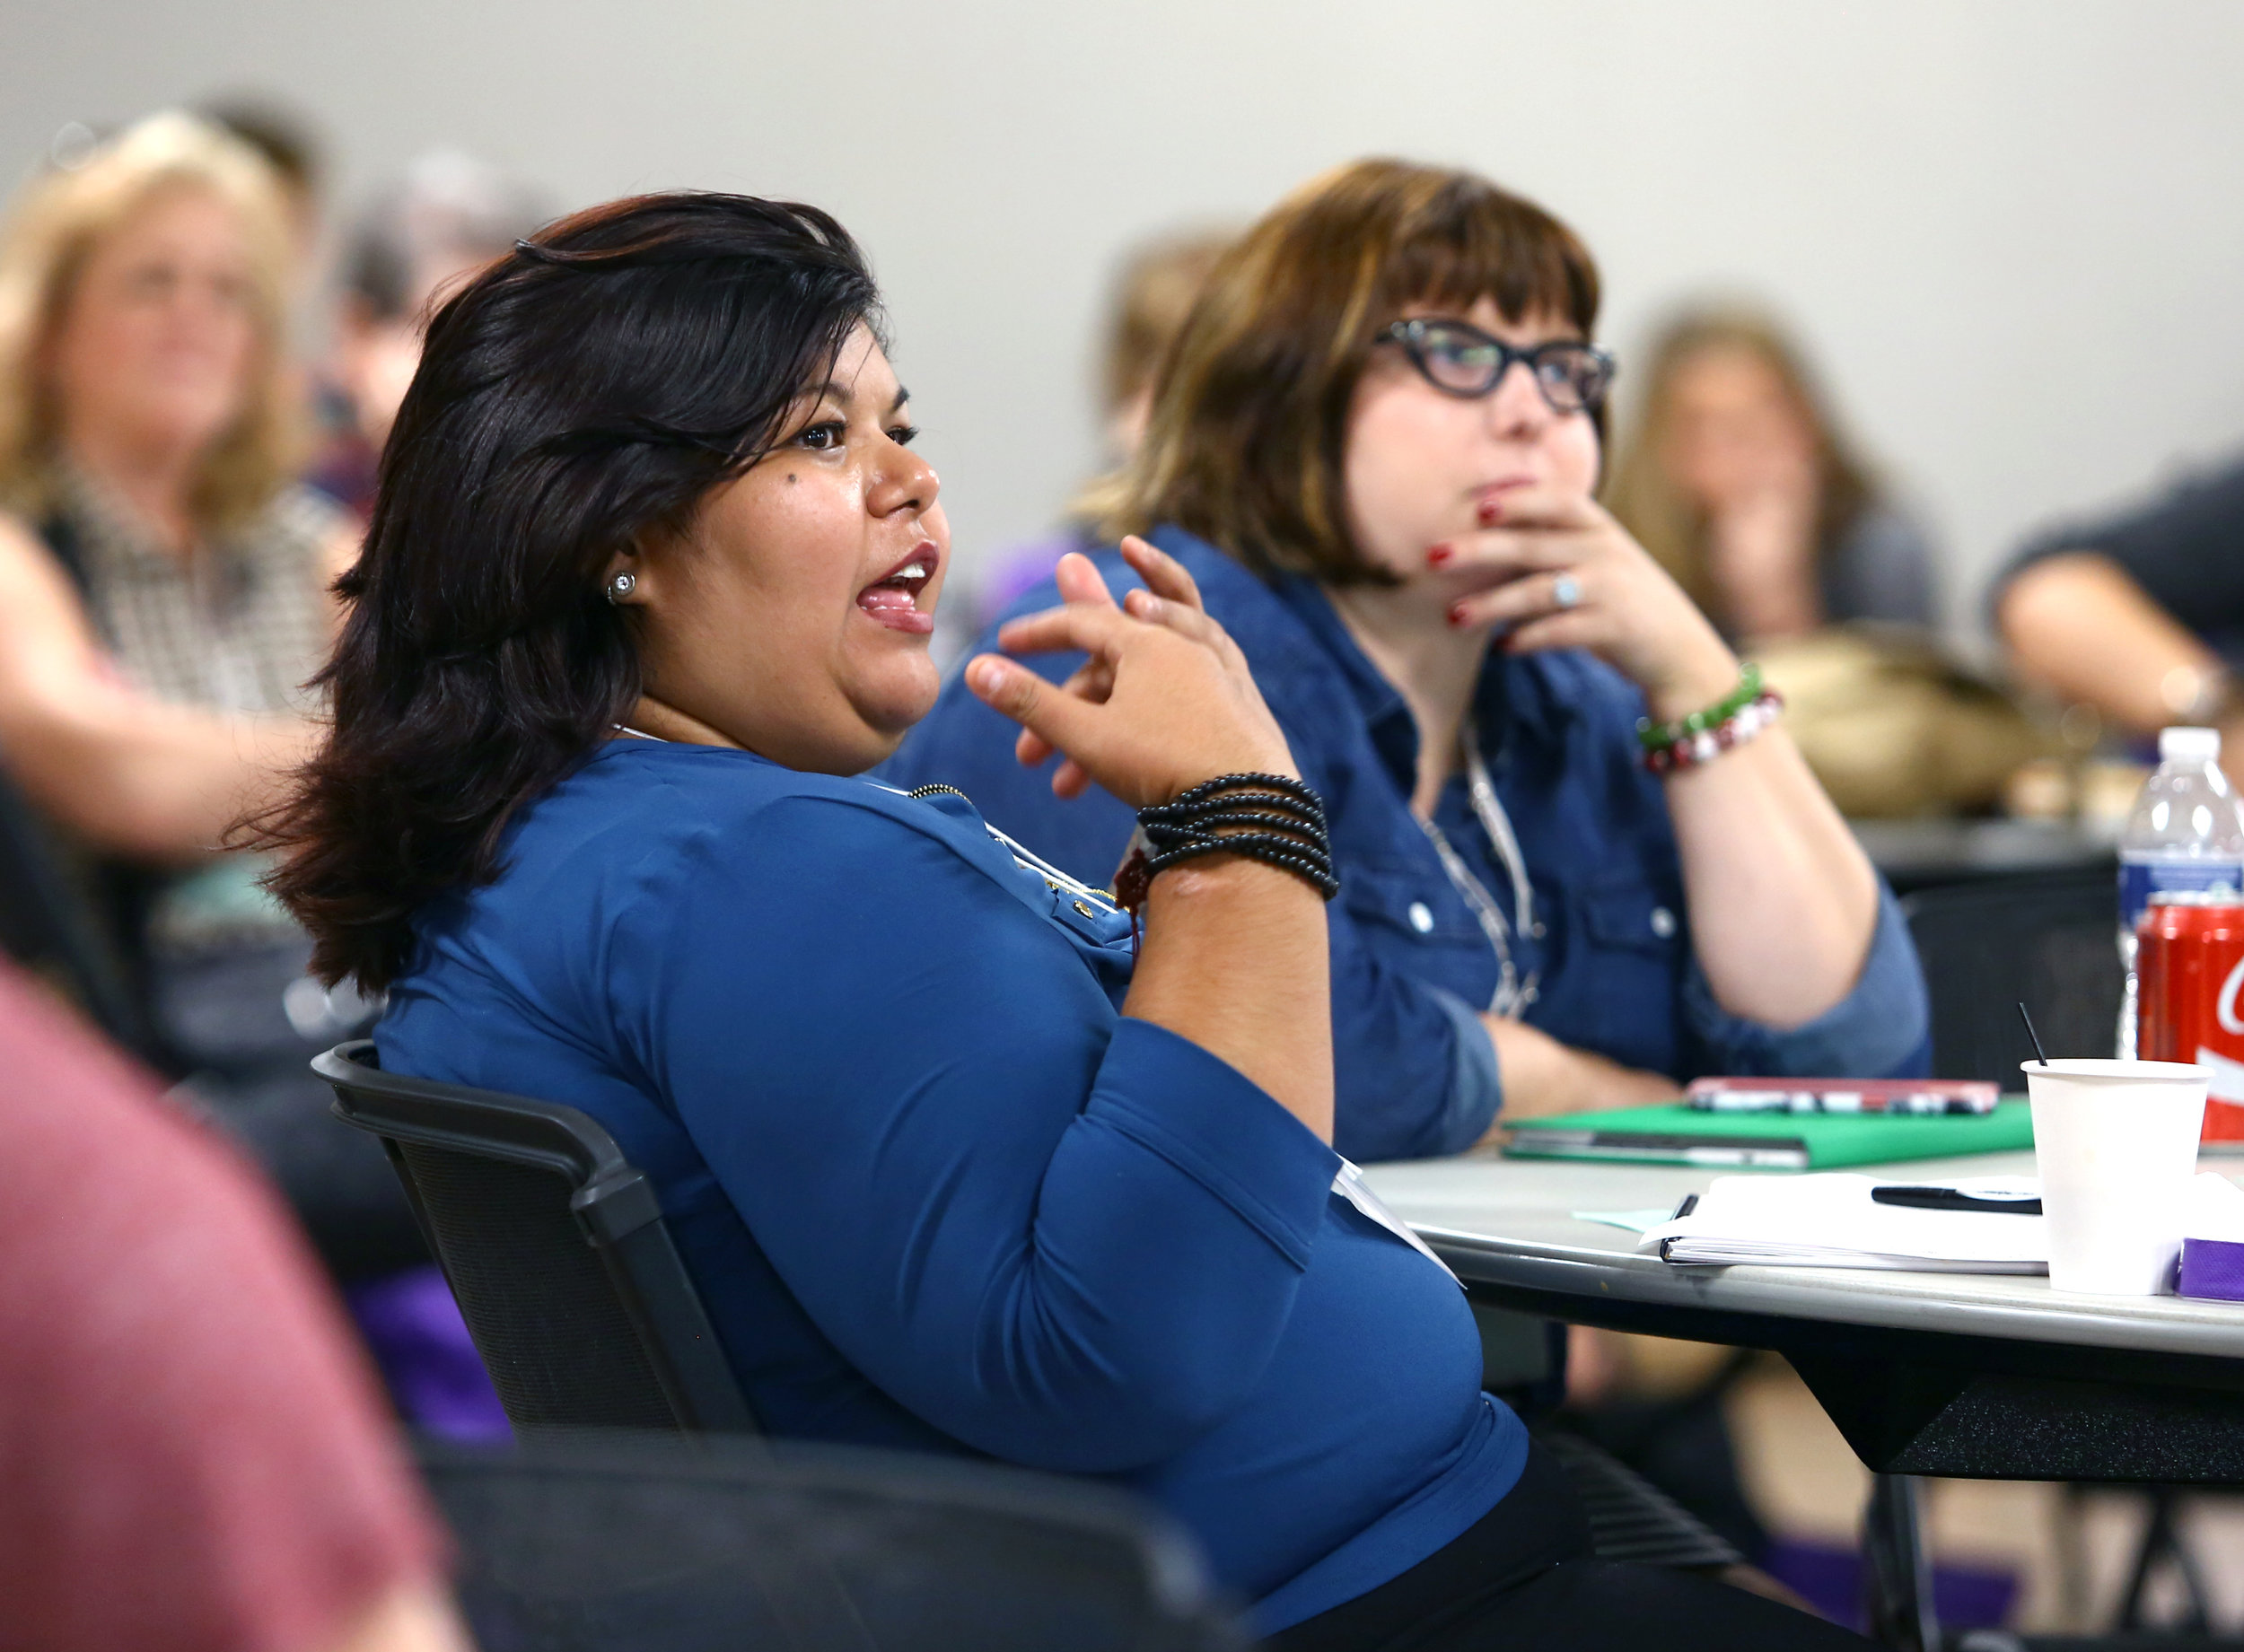 Marlett Garcia of El Paso Tx. interacts with speaker Theresa Flores during the University of Toledo Human Trafficking Social Justice conference held at the university's student union on Thursday, Sept. 22, 2016.